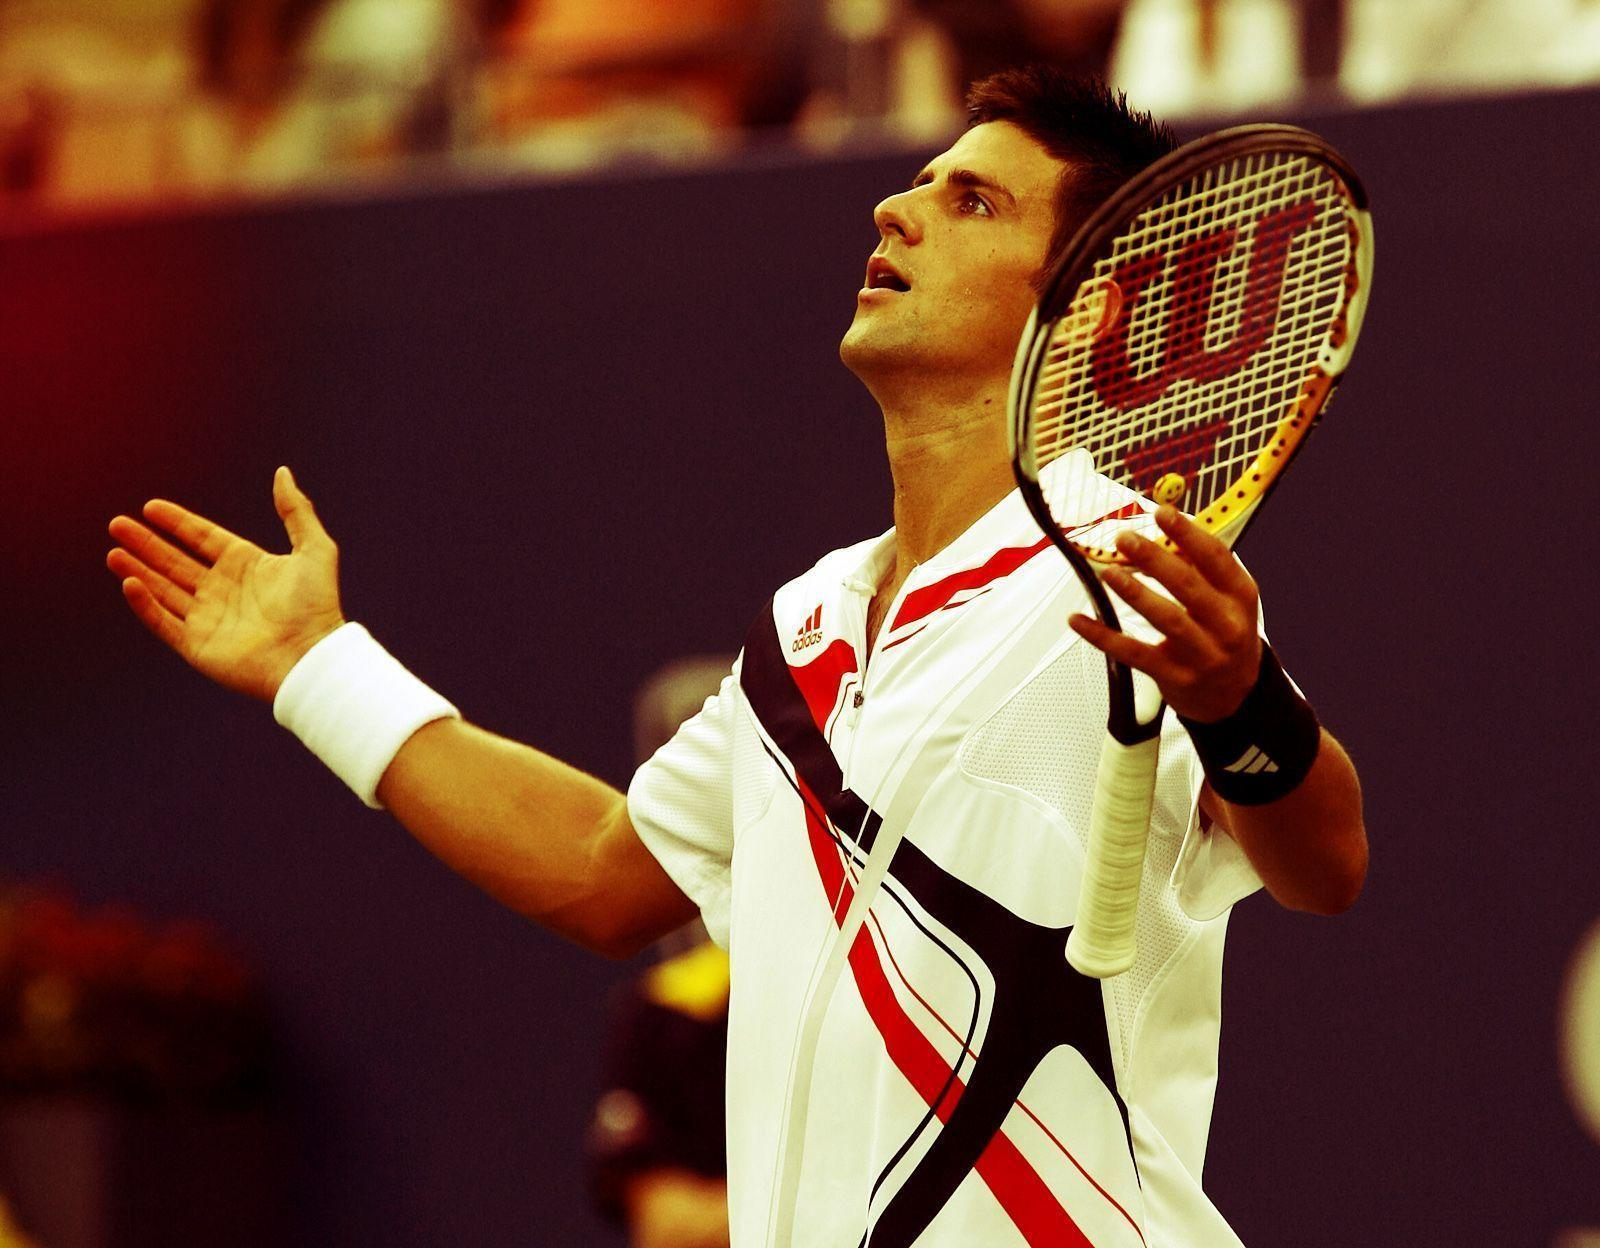 Tennis Player Novak Djokovic HD Wallpapers:wallpapers screensavers